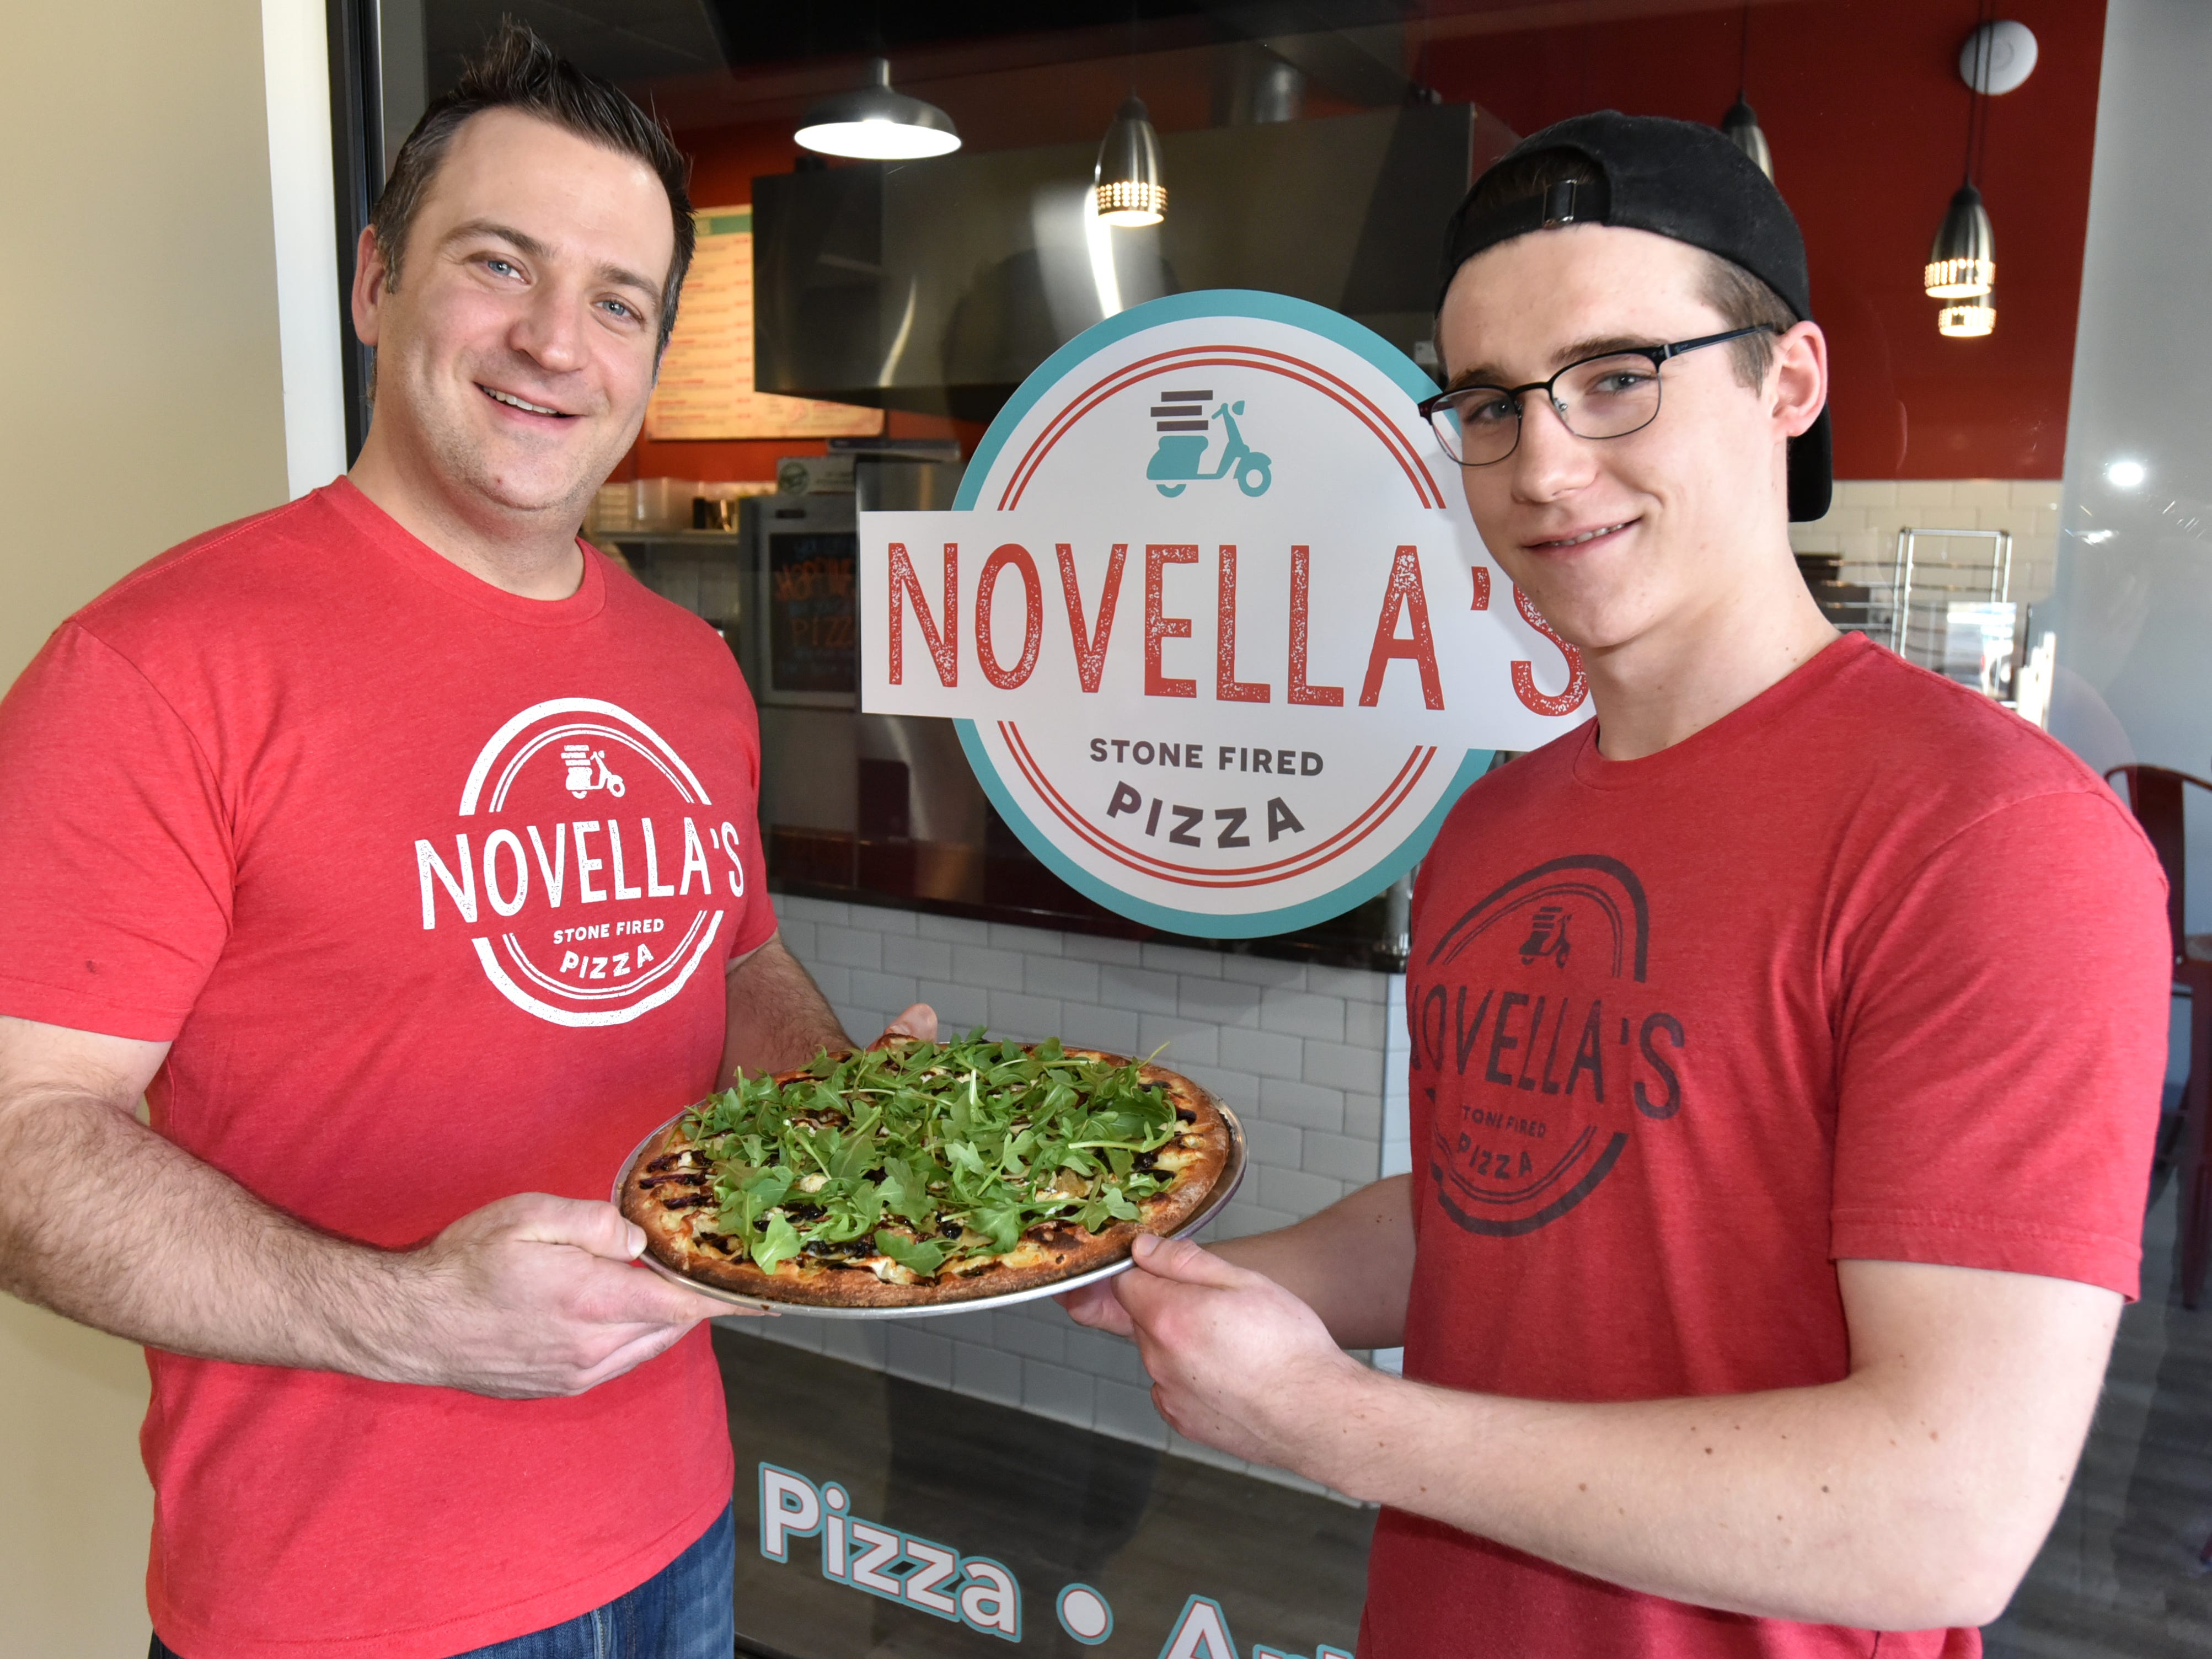 Brandon Davis and Novella's employee Joe Ellis, right, hold a finished example of their Fig & Pig pizza at their New Hudson pizzeria.